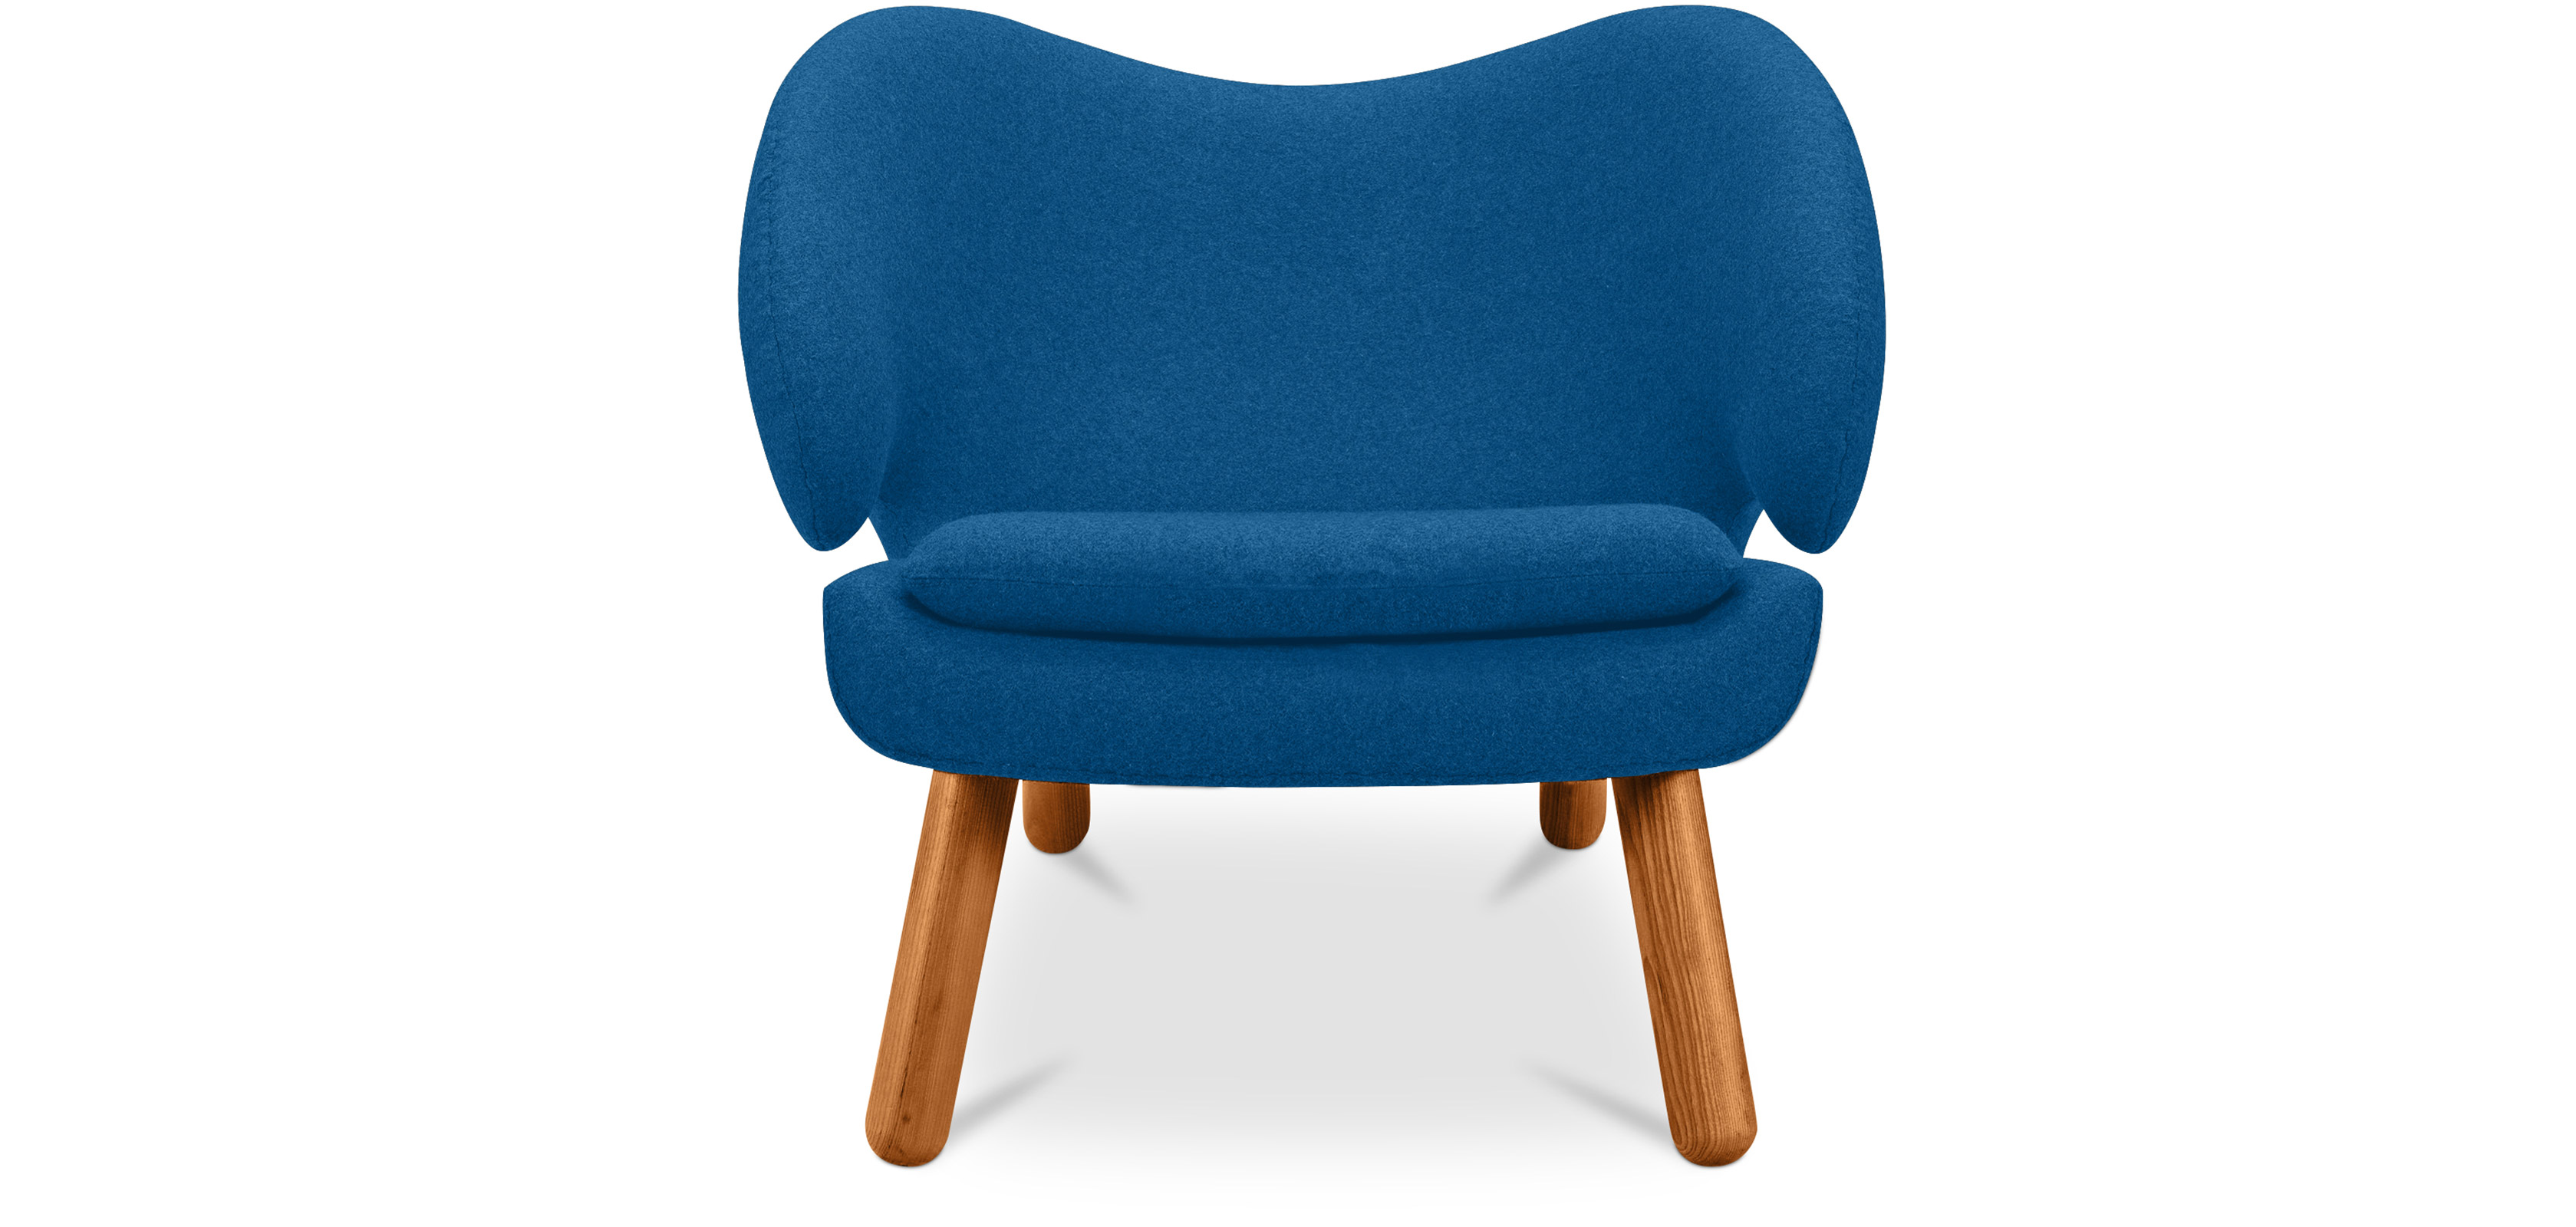 Fauteuil de salon p lican design scandinave style finn - Fauteuil de salon but ...